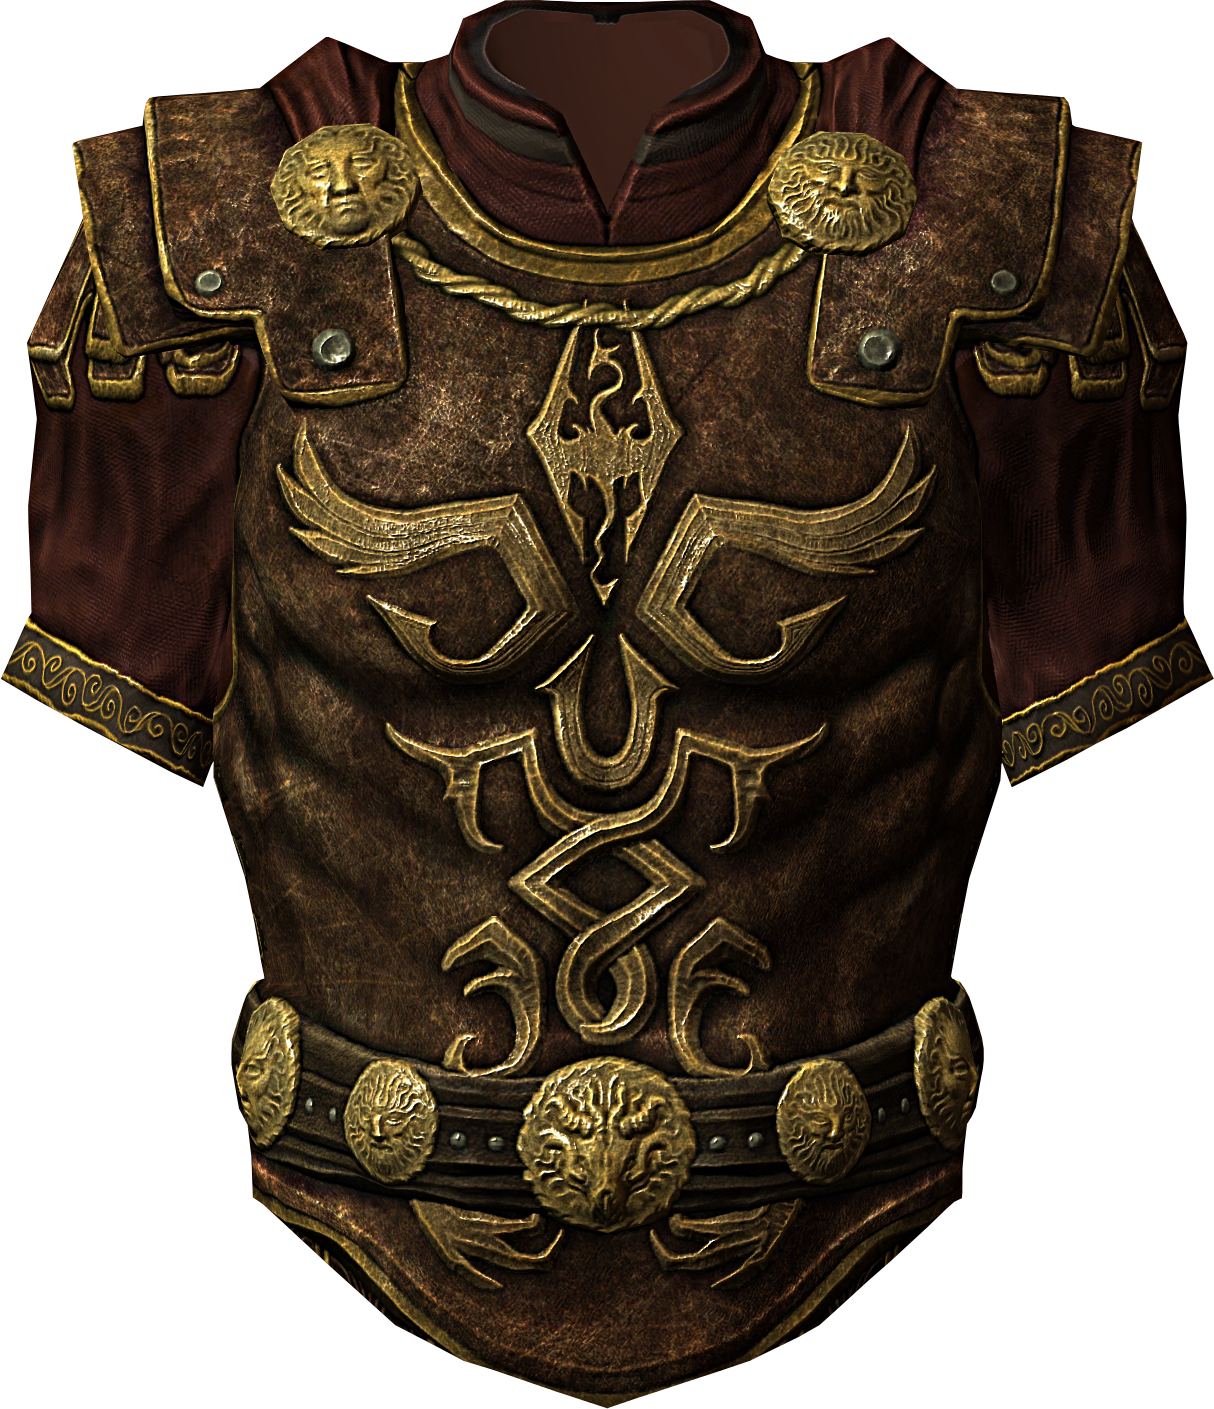 I think that Daniel would wear this... Maybe this is like, the mentor and higher-uppers' armor?